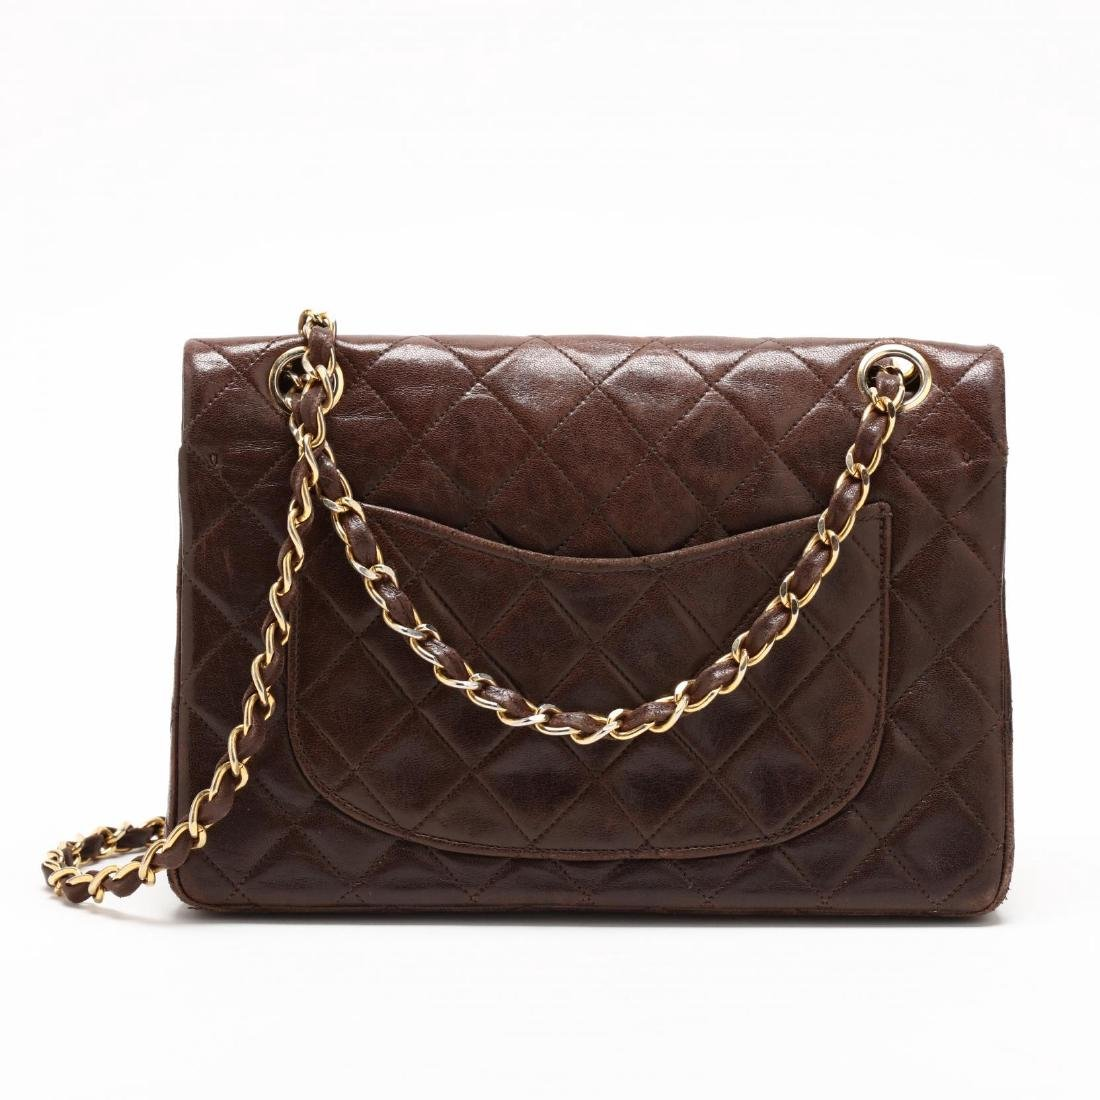 Classic Small Double Flap Shoulder Bag, Chanel - 2